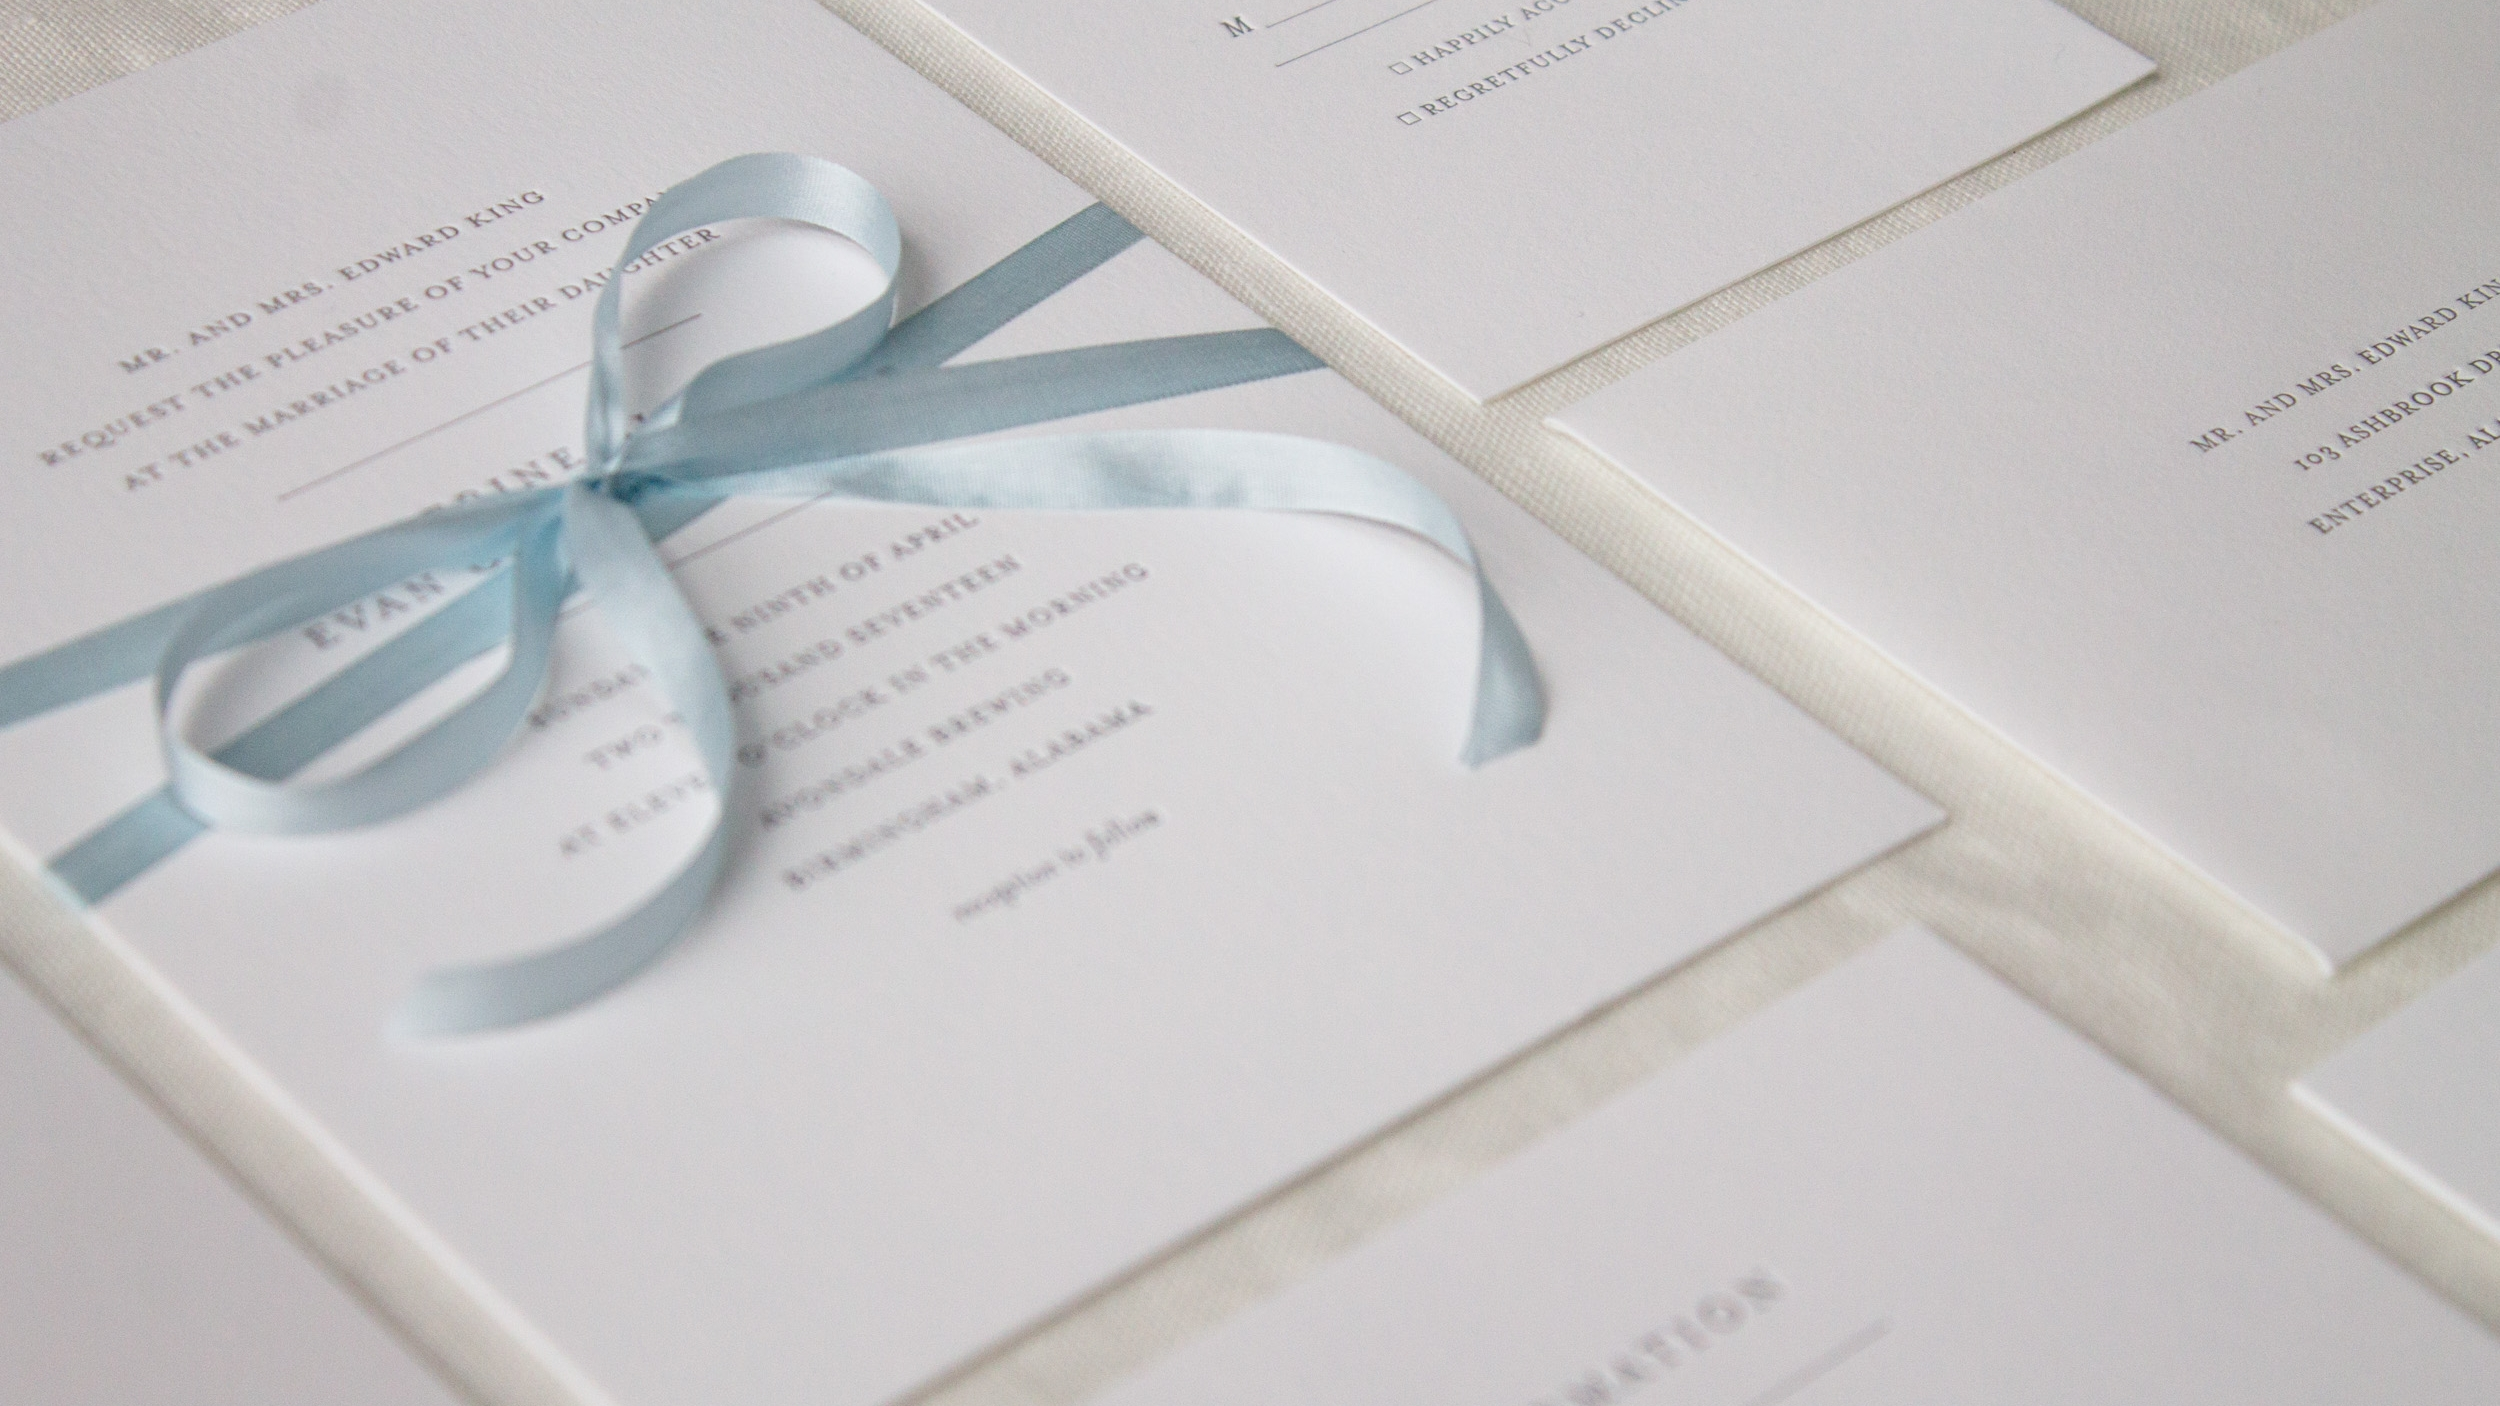 Coeo-Weddings-letterpress-printing-process.jpg